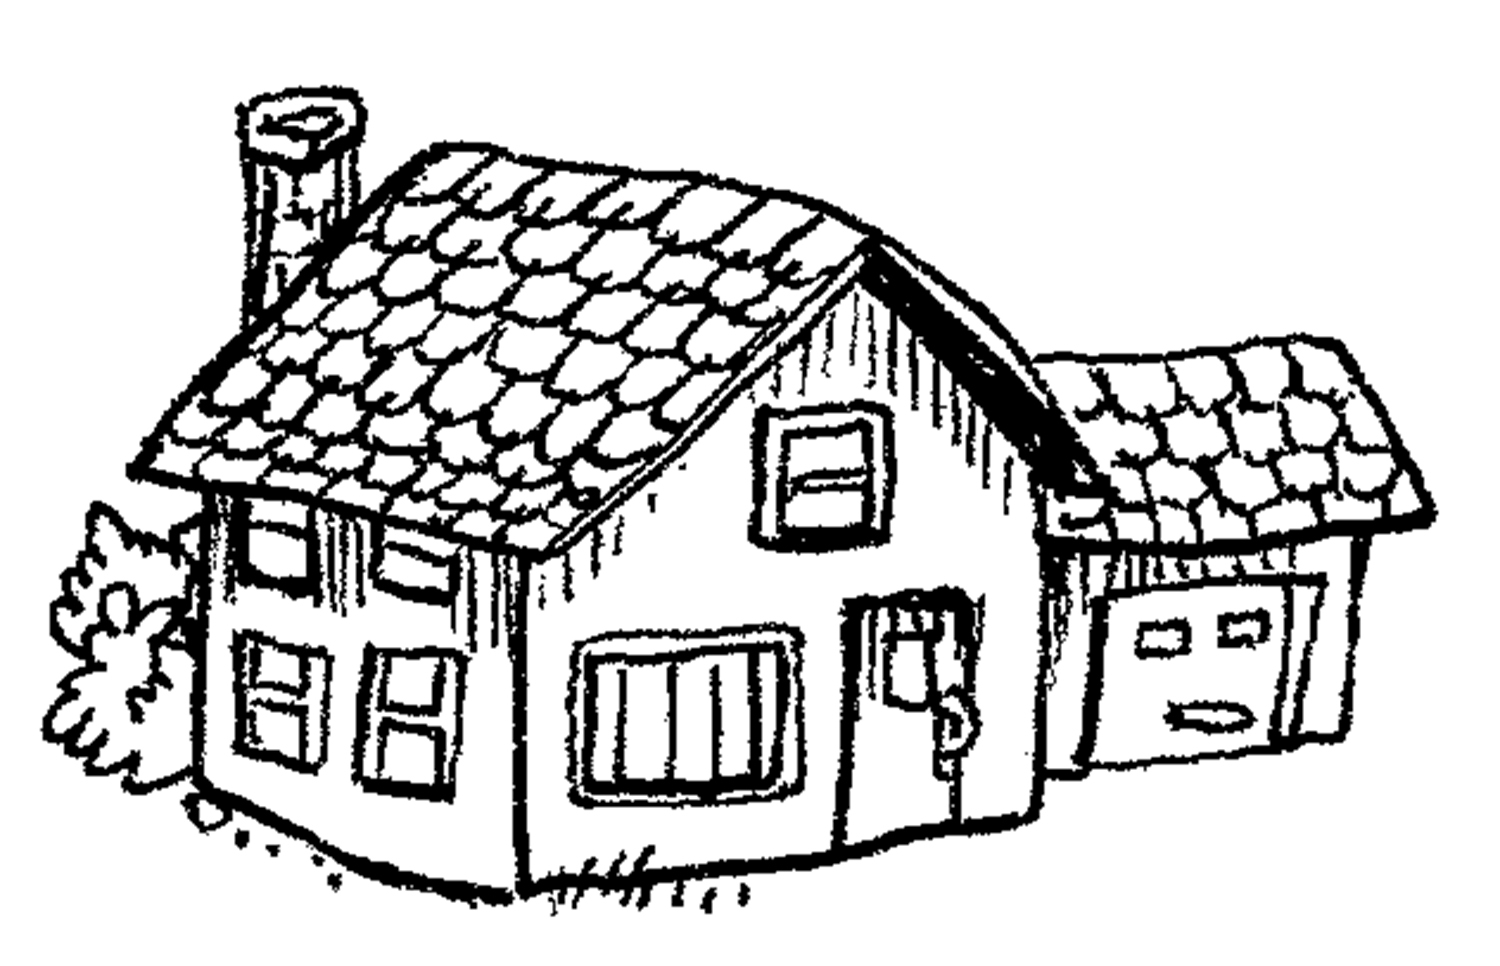 coloring pages of house free printable house coloring pages for kids house of pages coloring 1 1